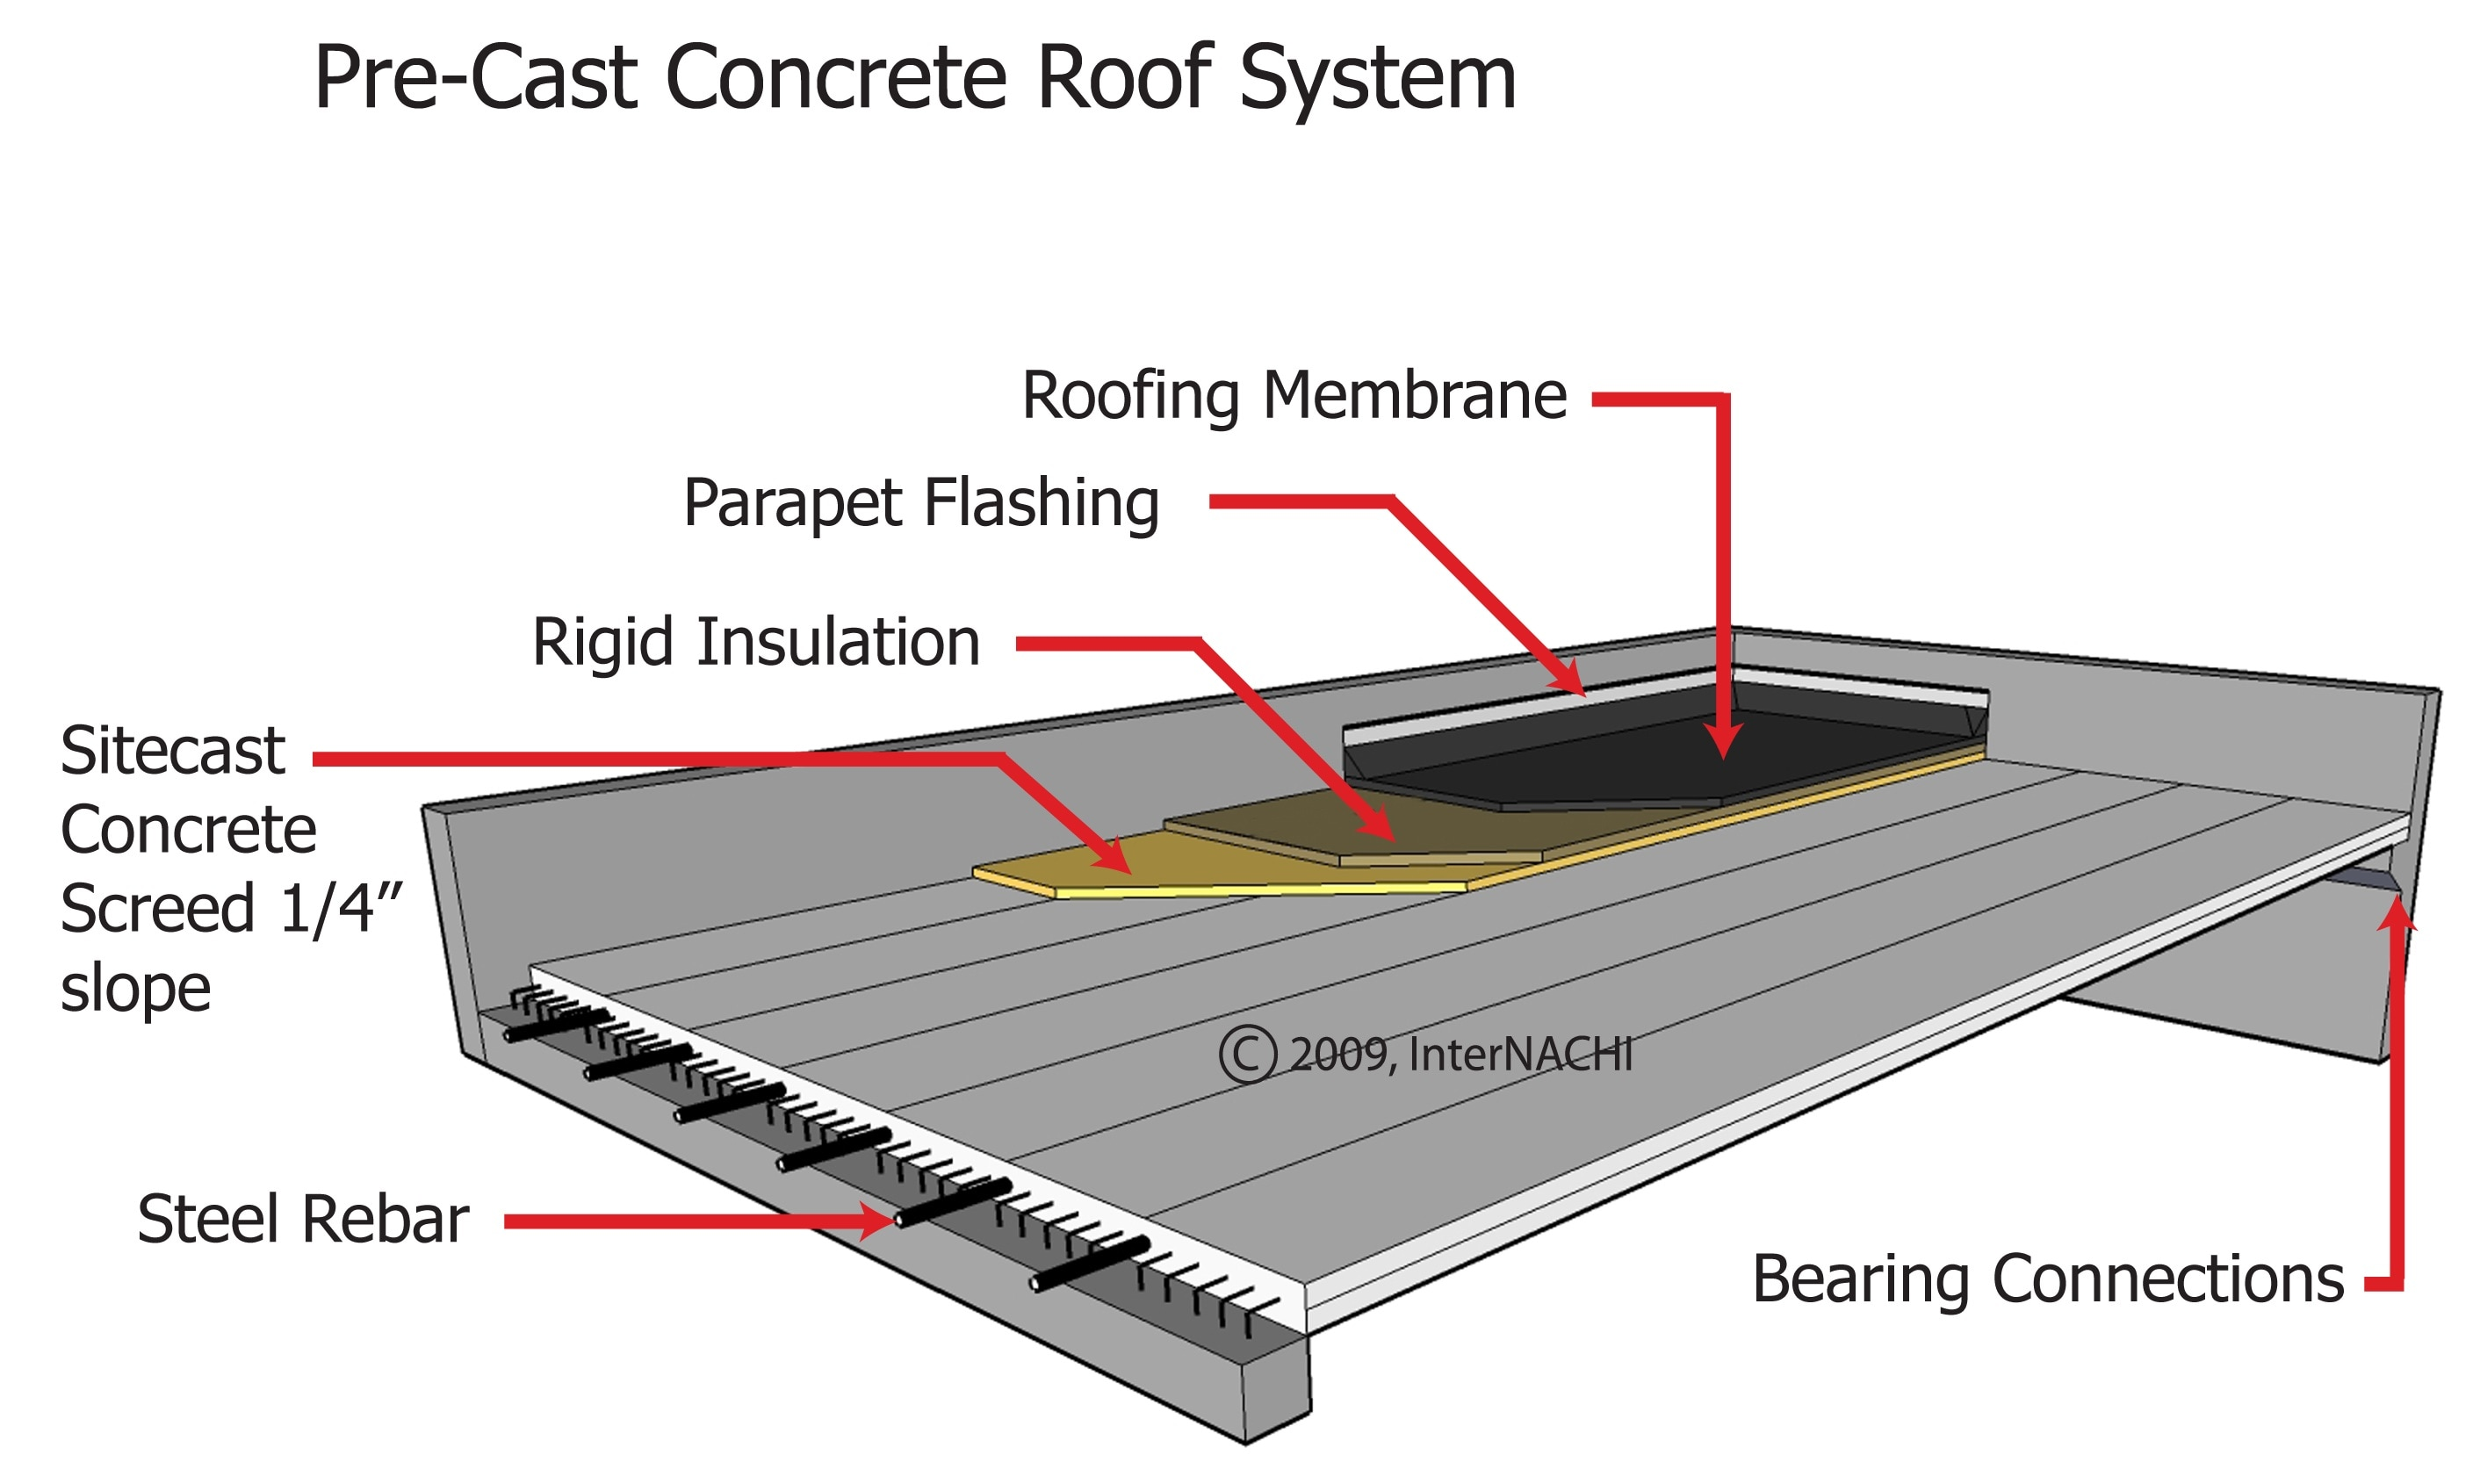 Pre-cast Concrete Roof System - Inspection Gallery - InterNACHI